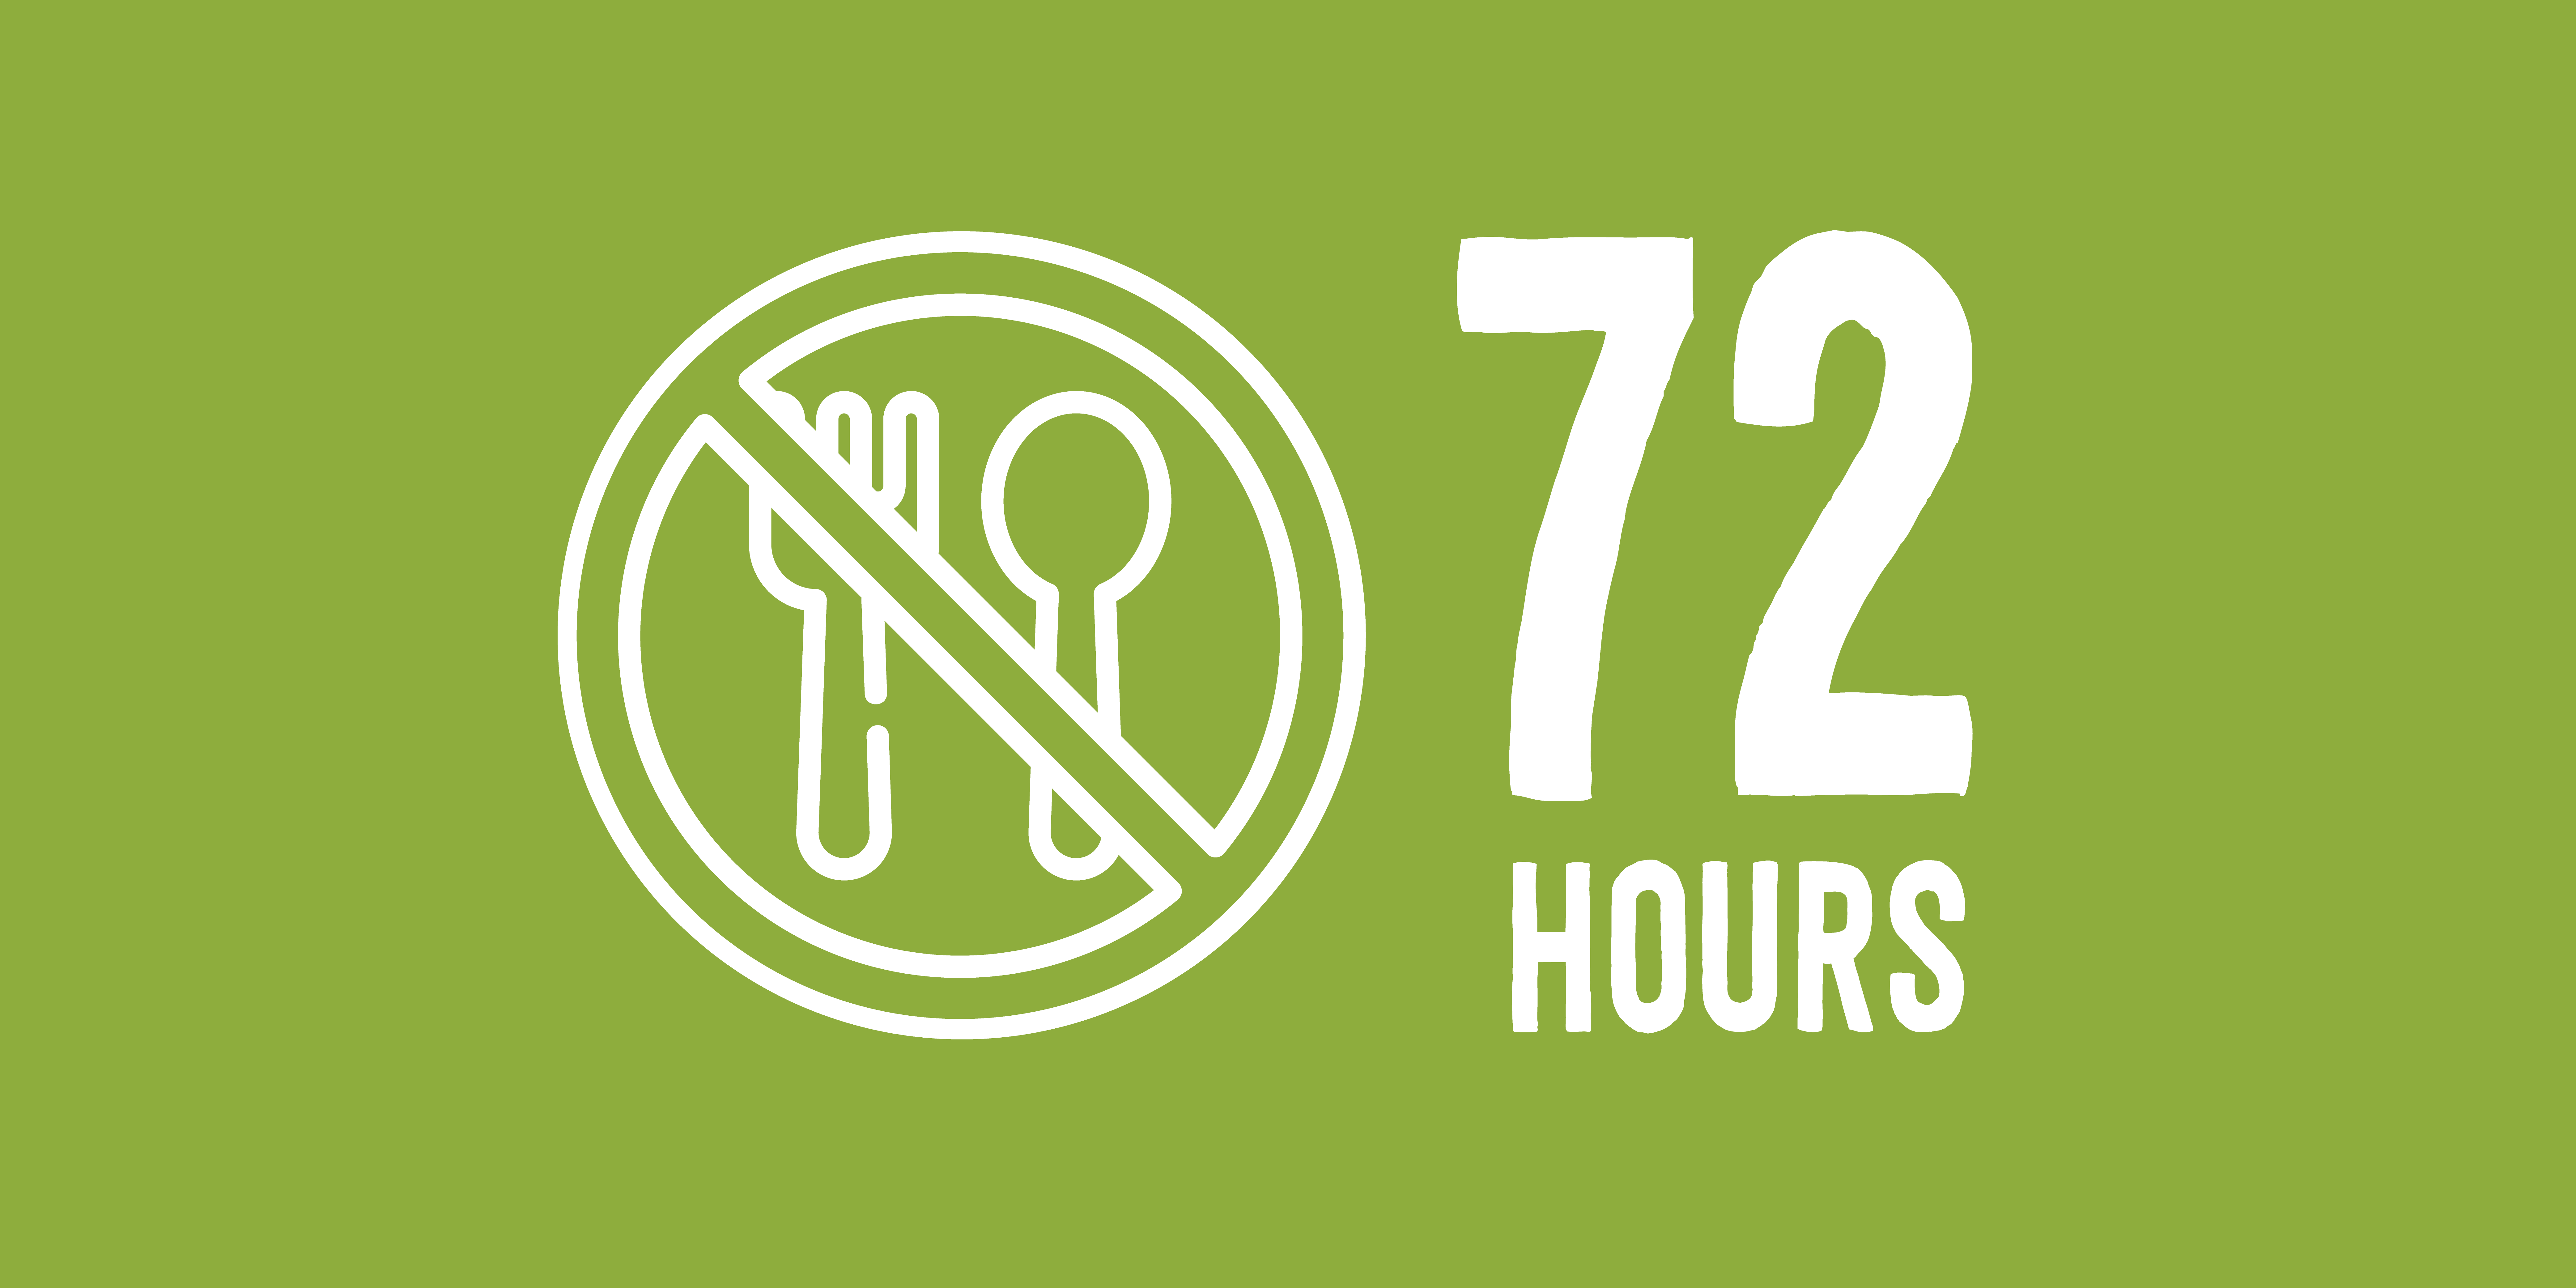 fasting for 72 hours